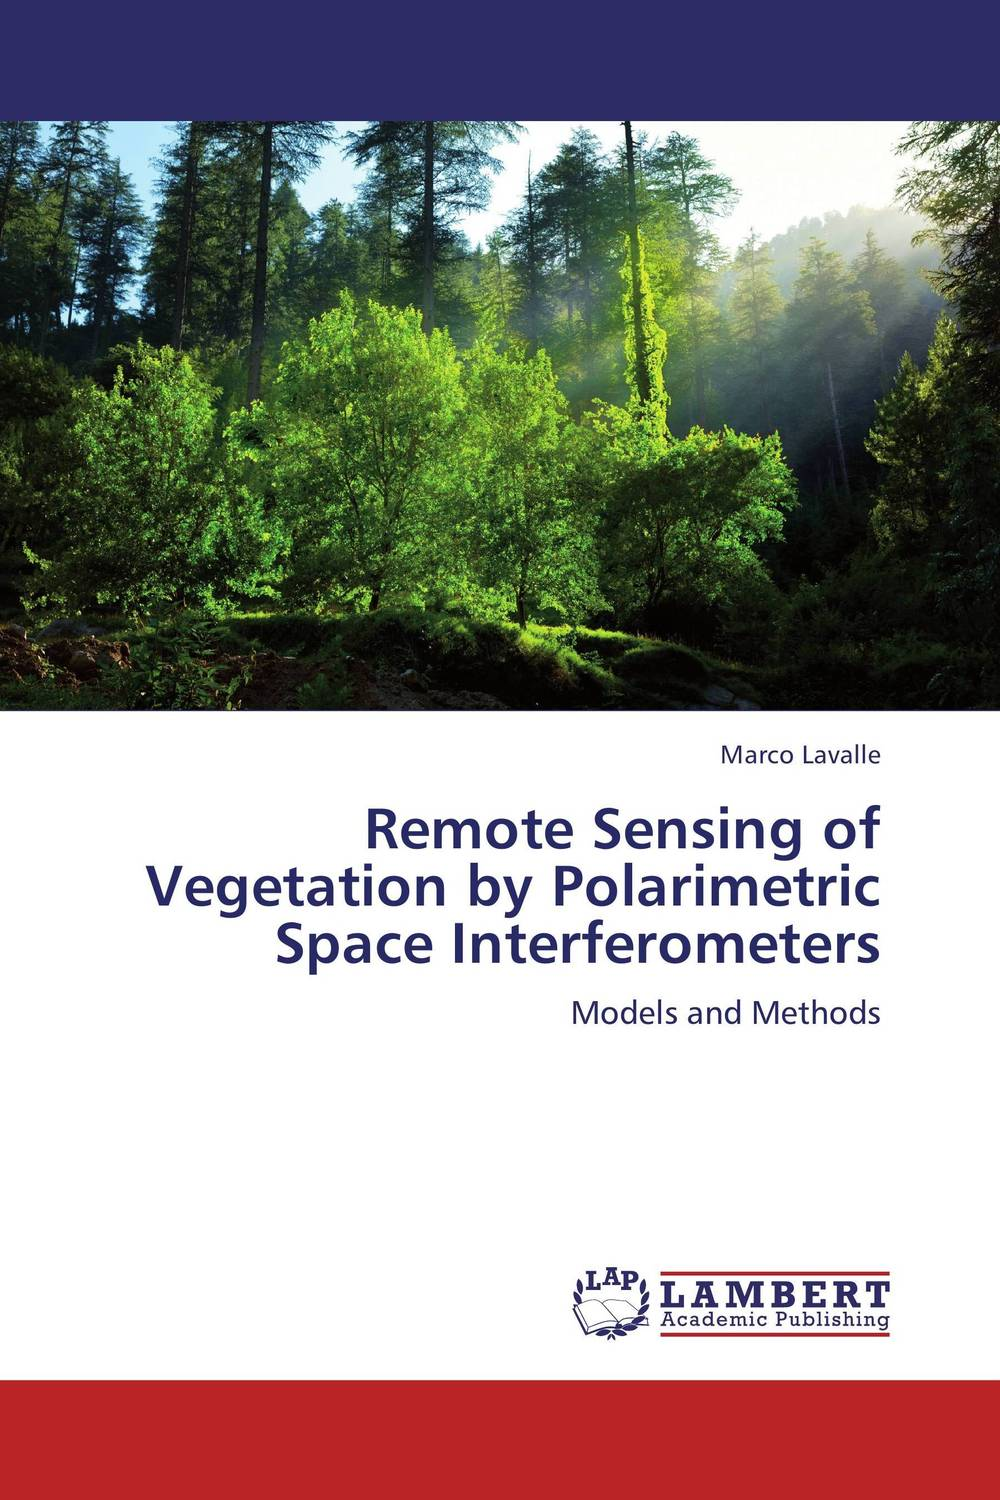 Remote Sensing of Vegetation by Polarimetric Space Interferometers remote sensing inversion problems and natural hazards asradvances in space research volume 21 3